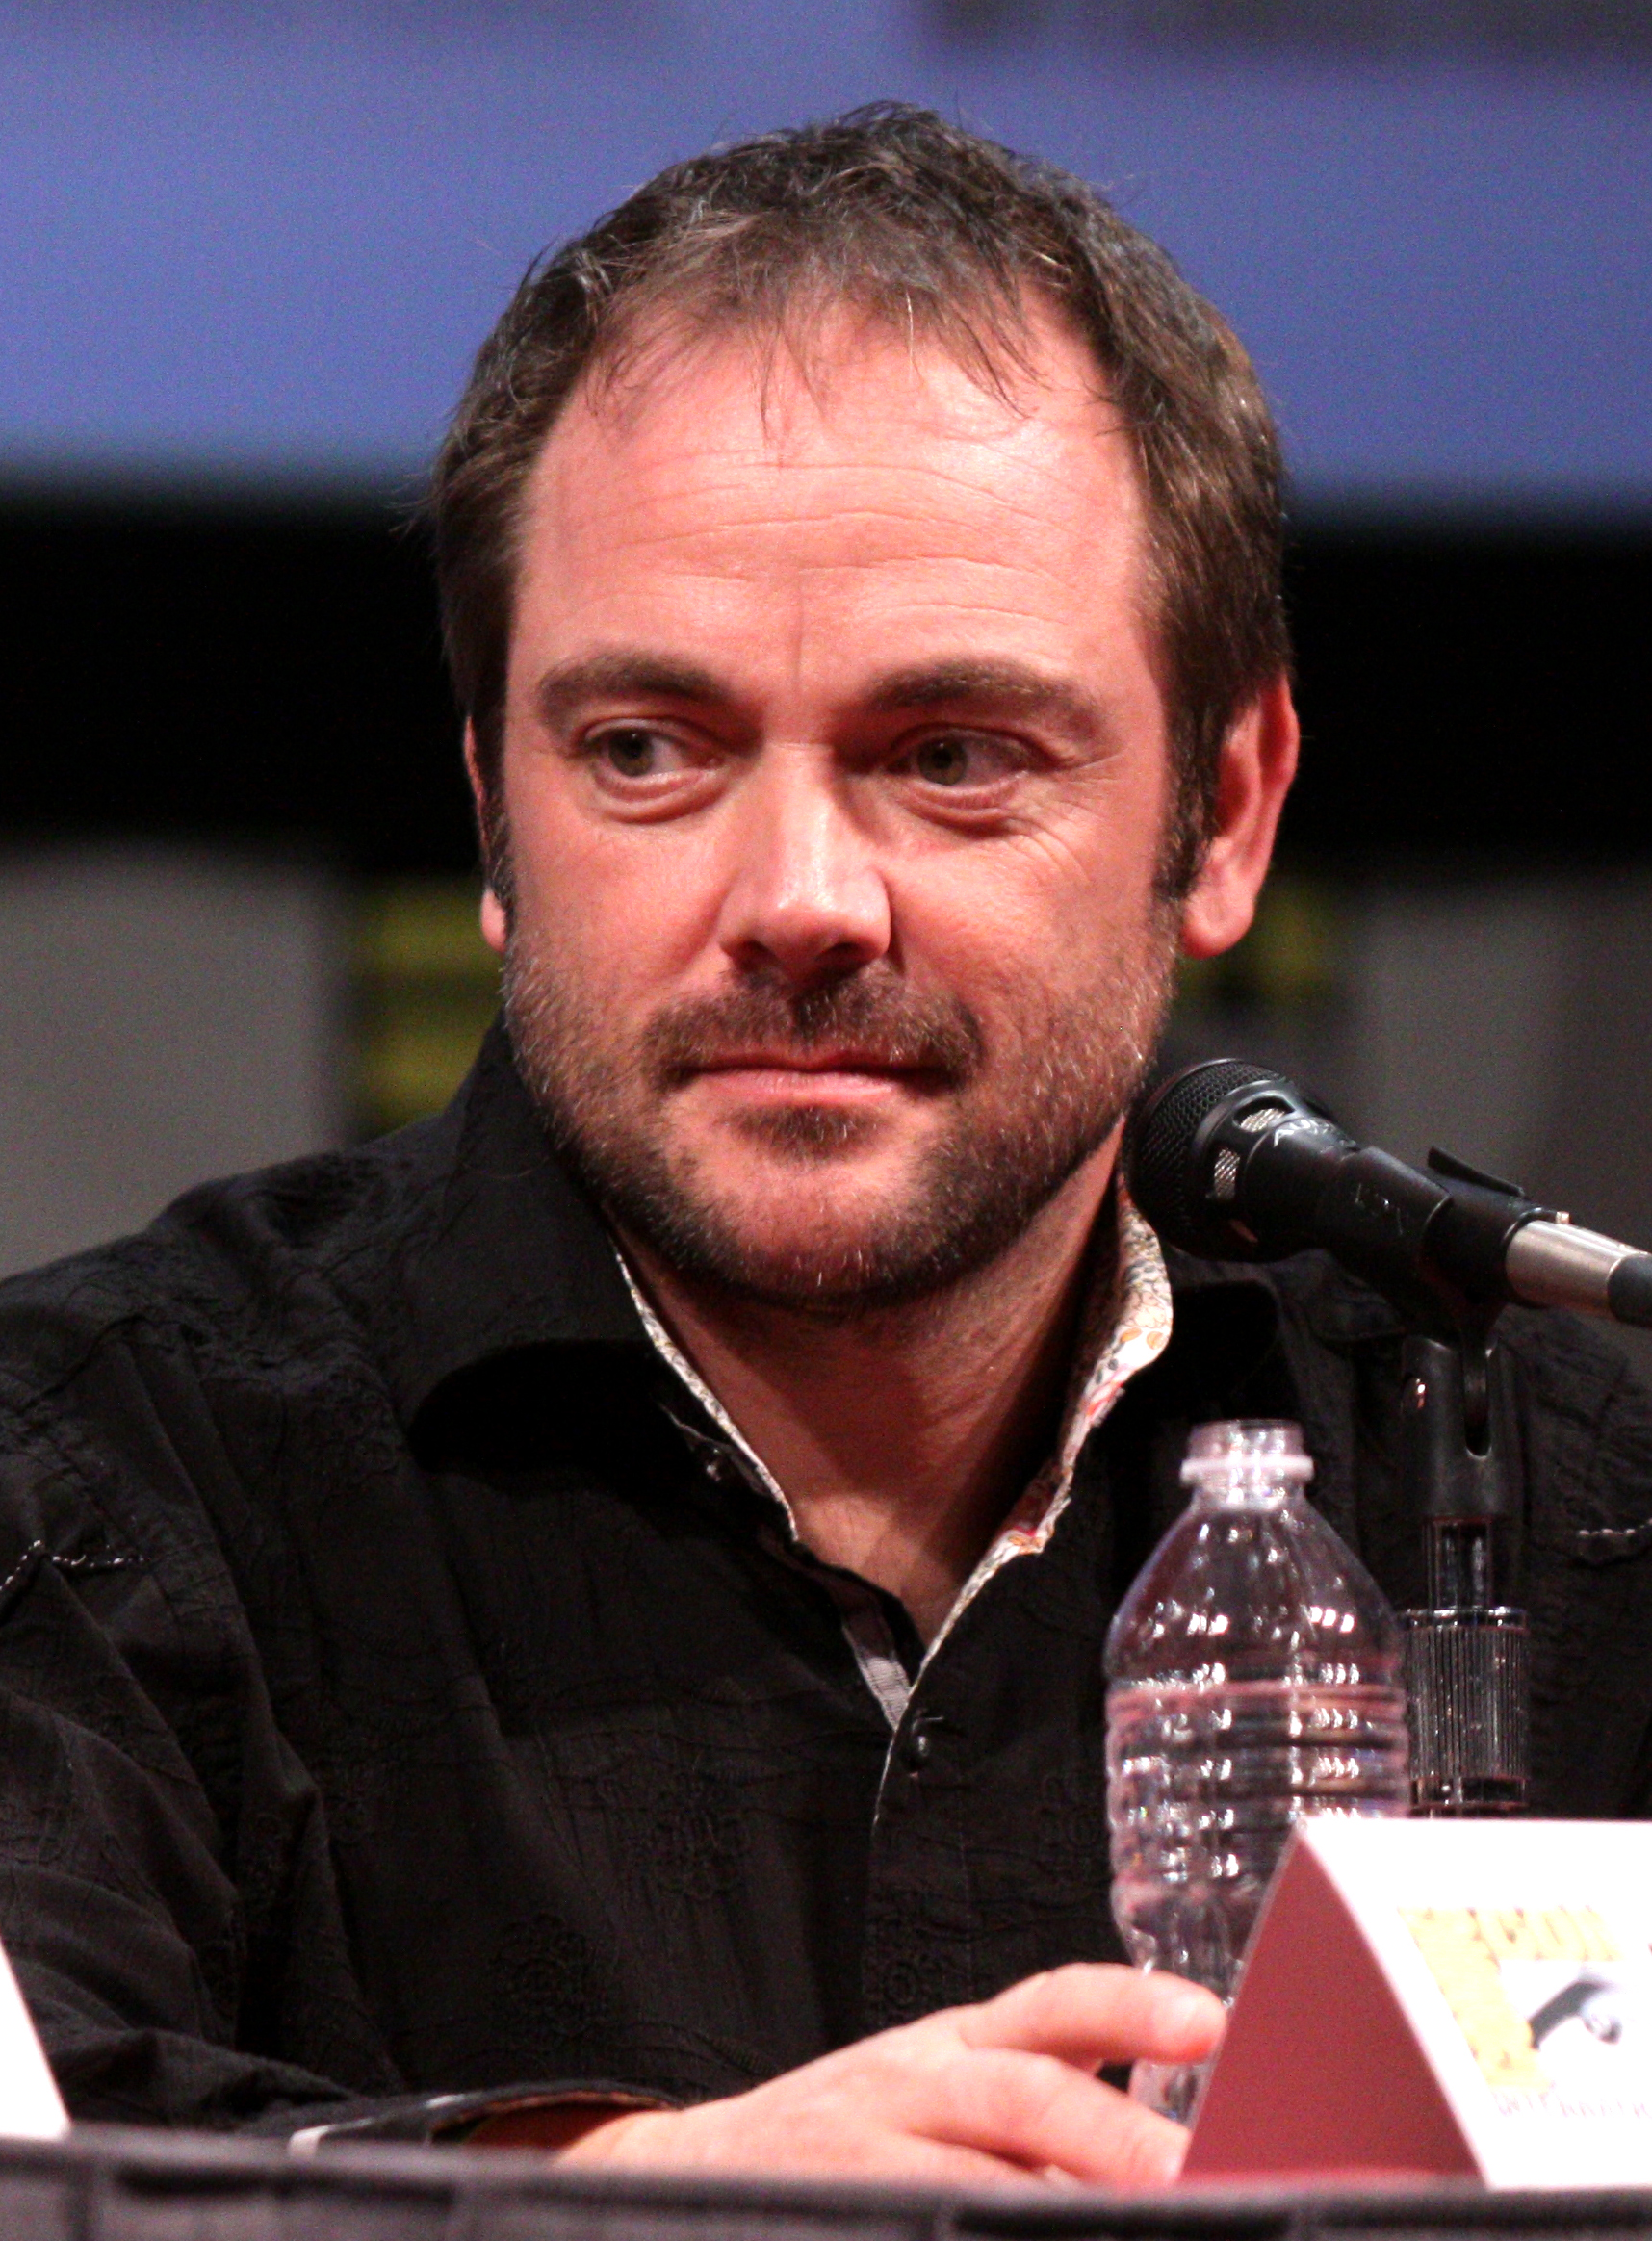 cleavage Mark Sheppard (born 1964) naked photo 2017